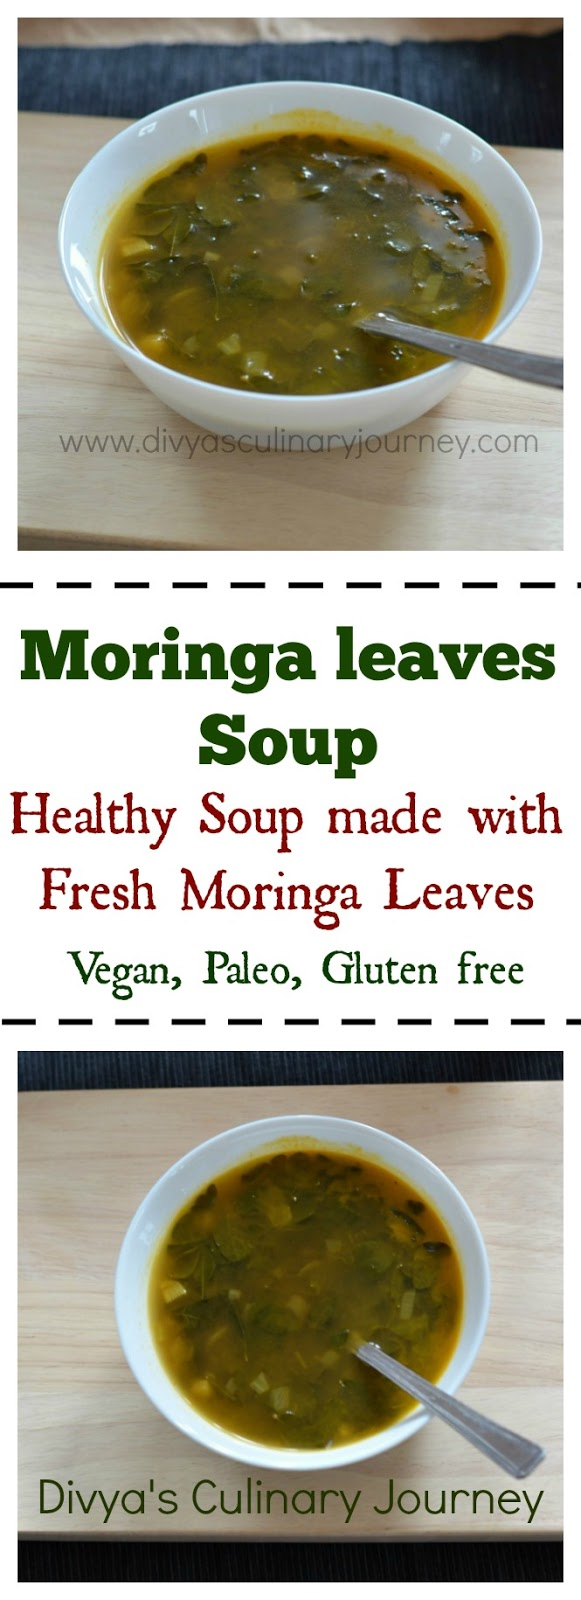 moringa leaves soup, drumstick leaves, vegan soup